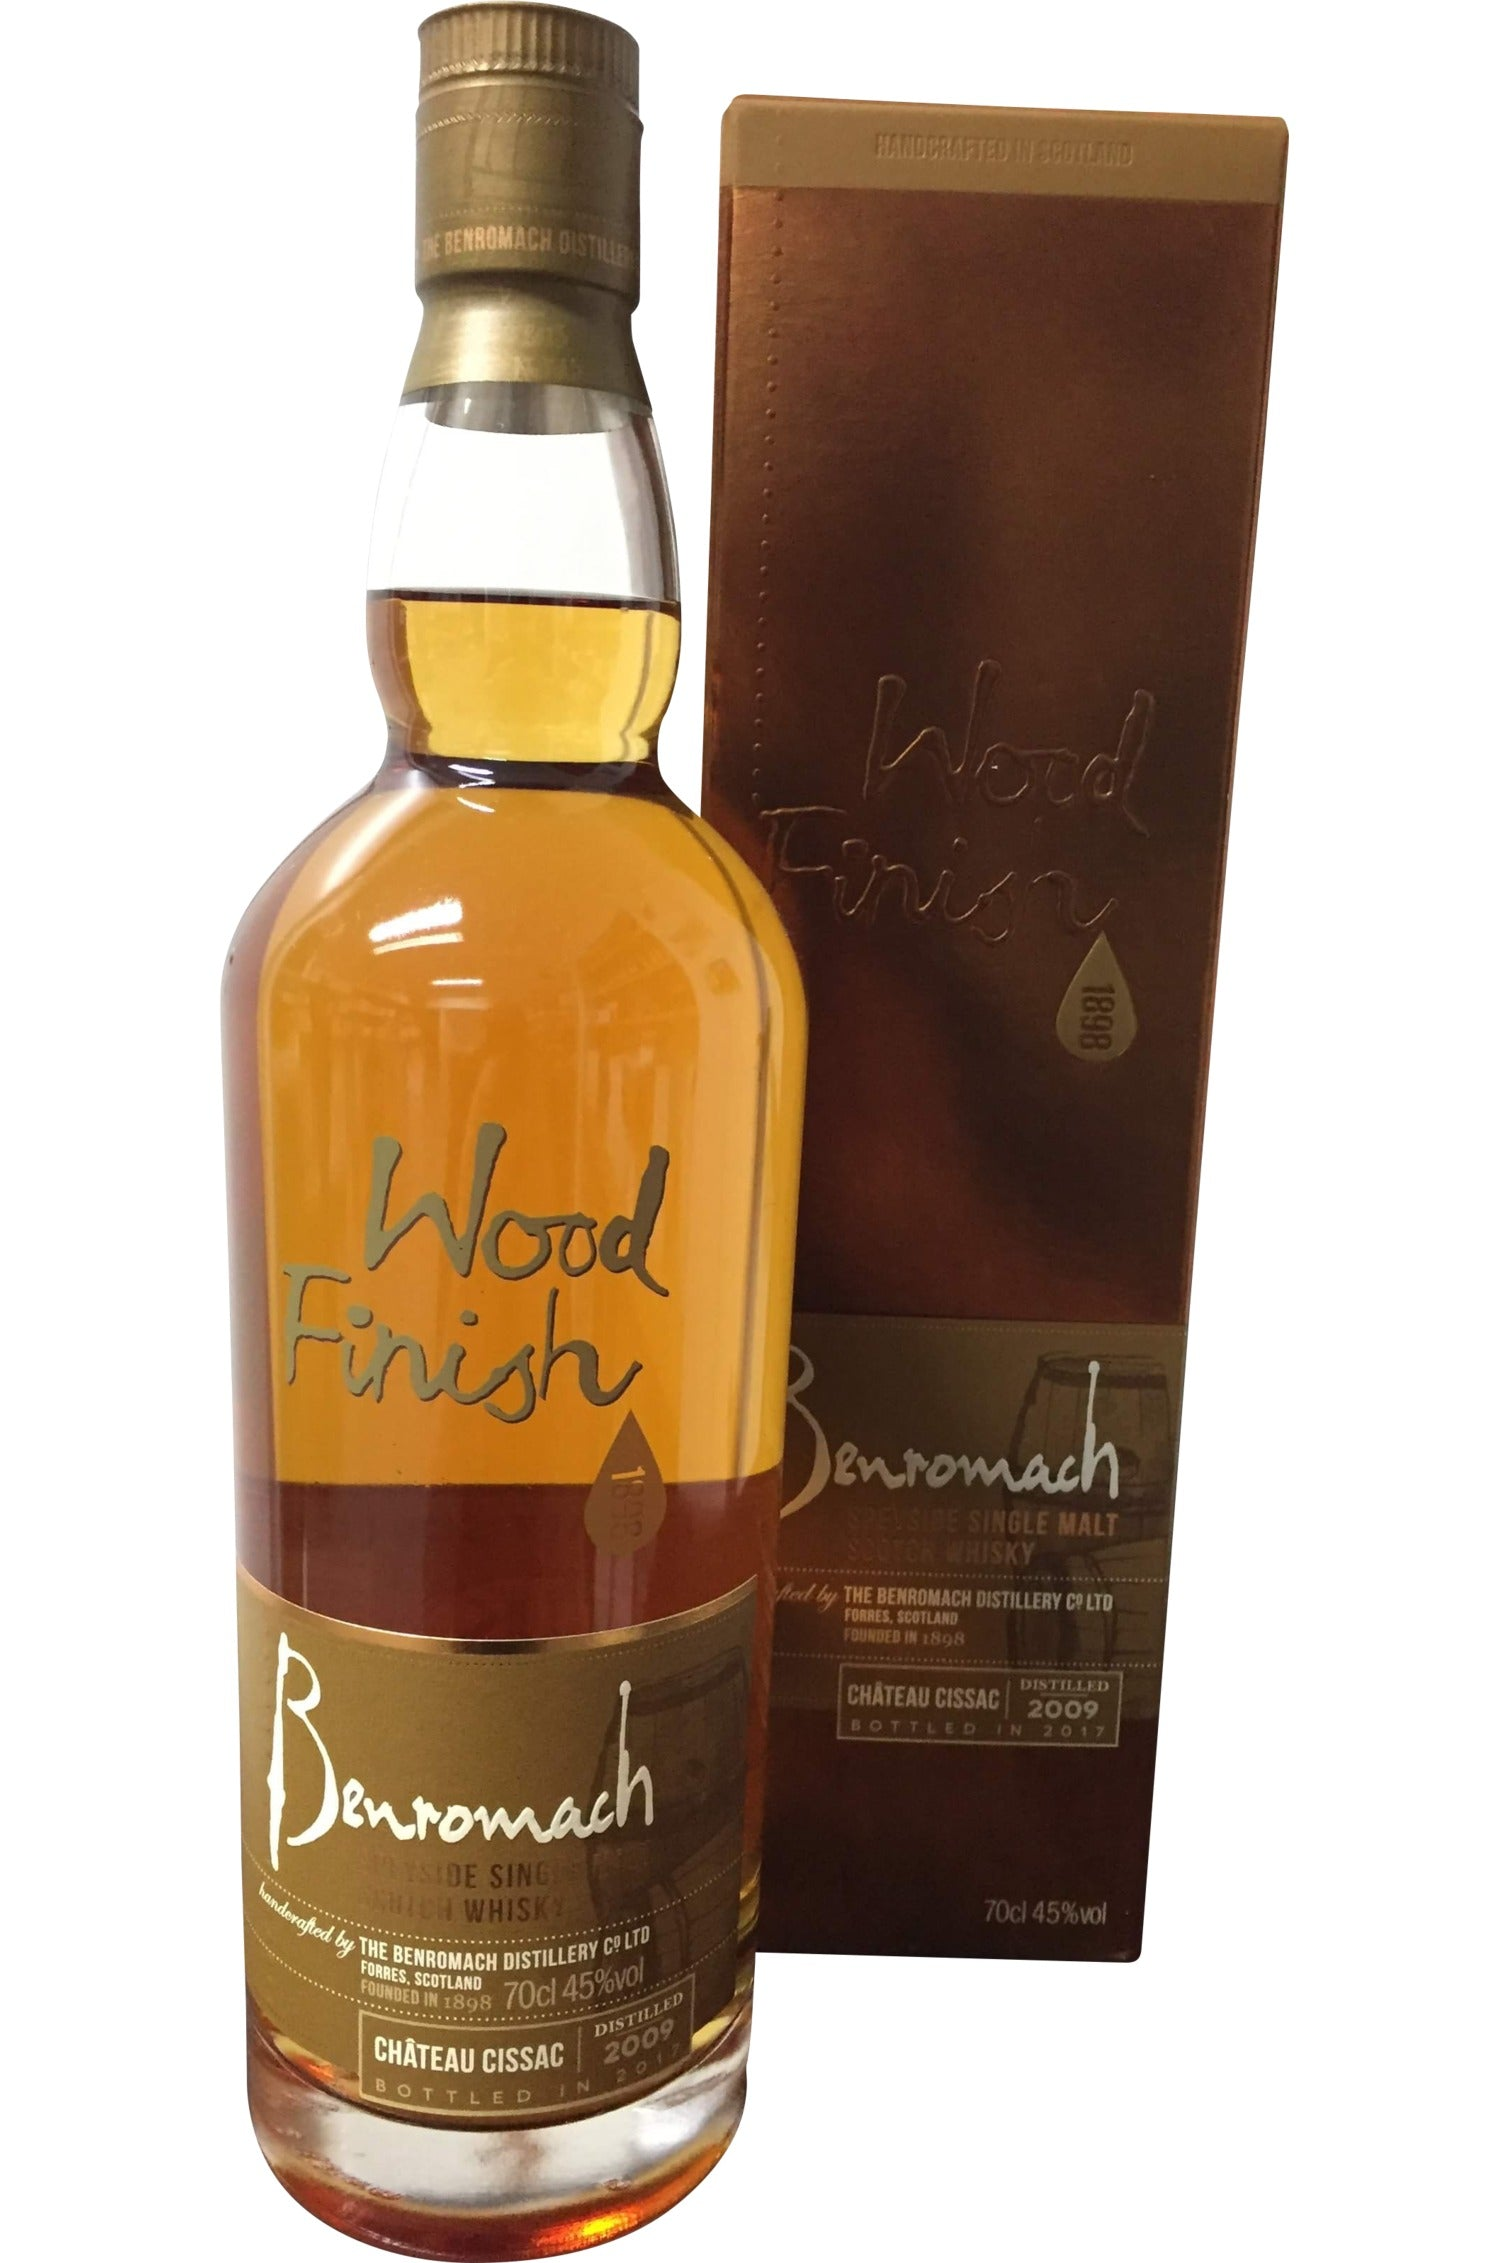 Benromach 2010 Chateau Cissac Bordeaux Whisky  45% 700ml